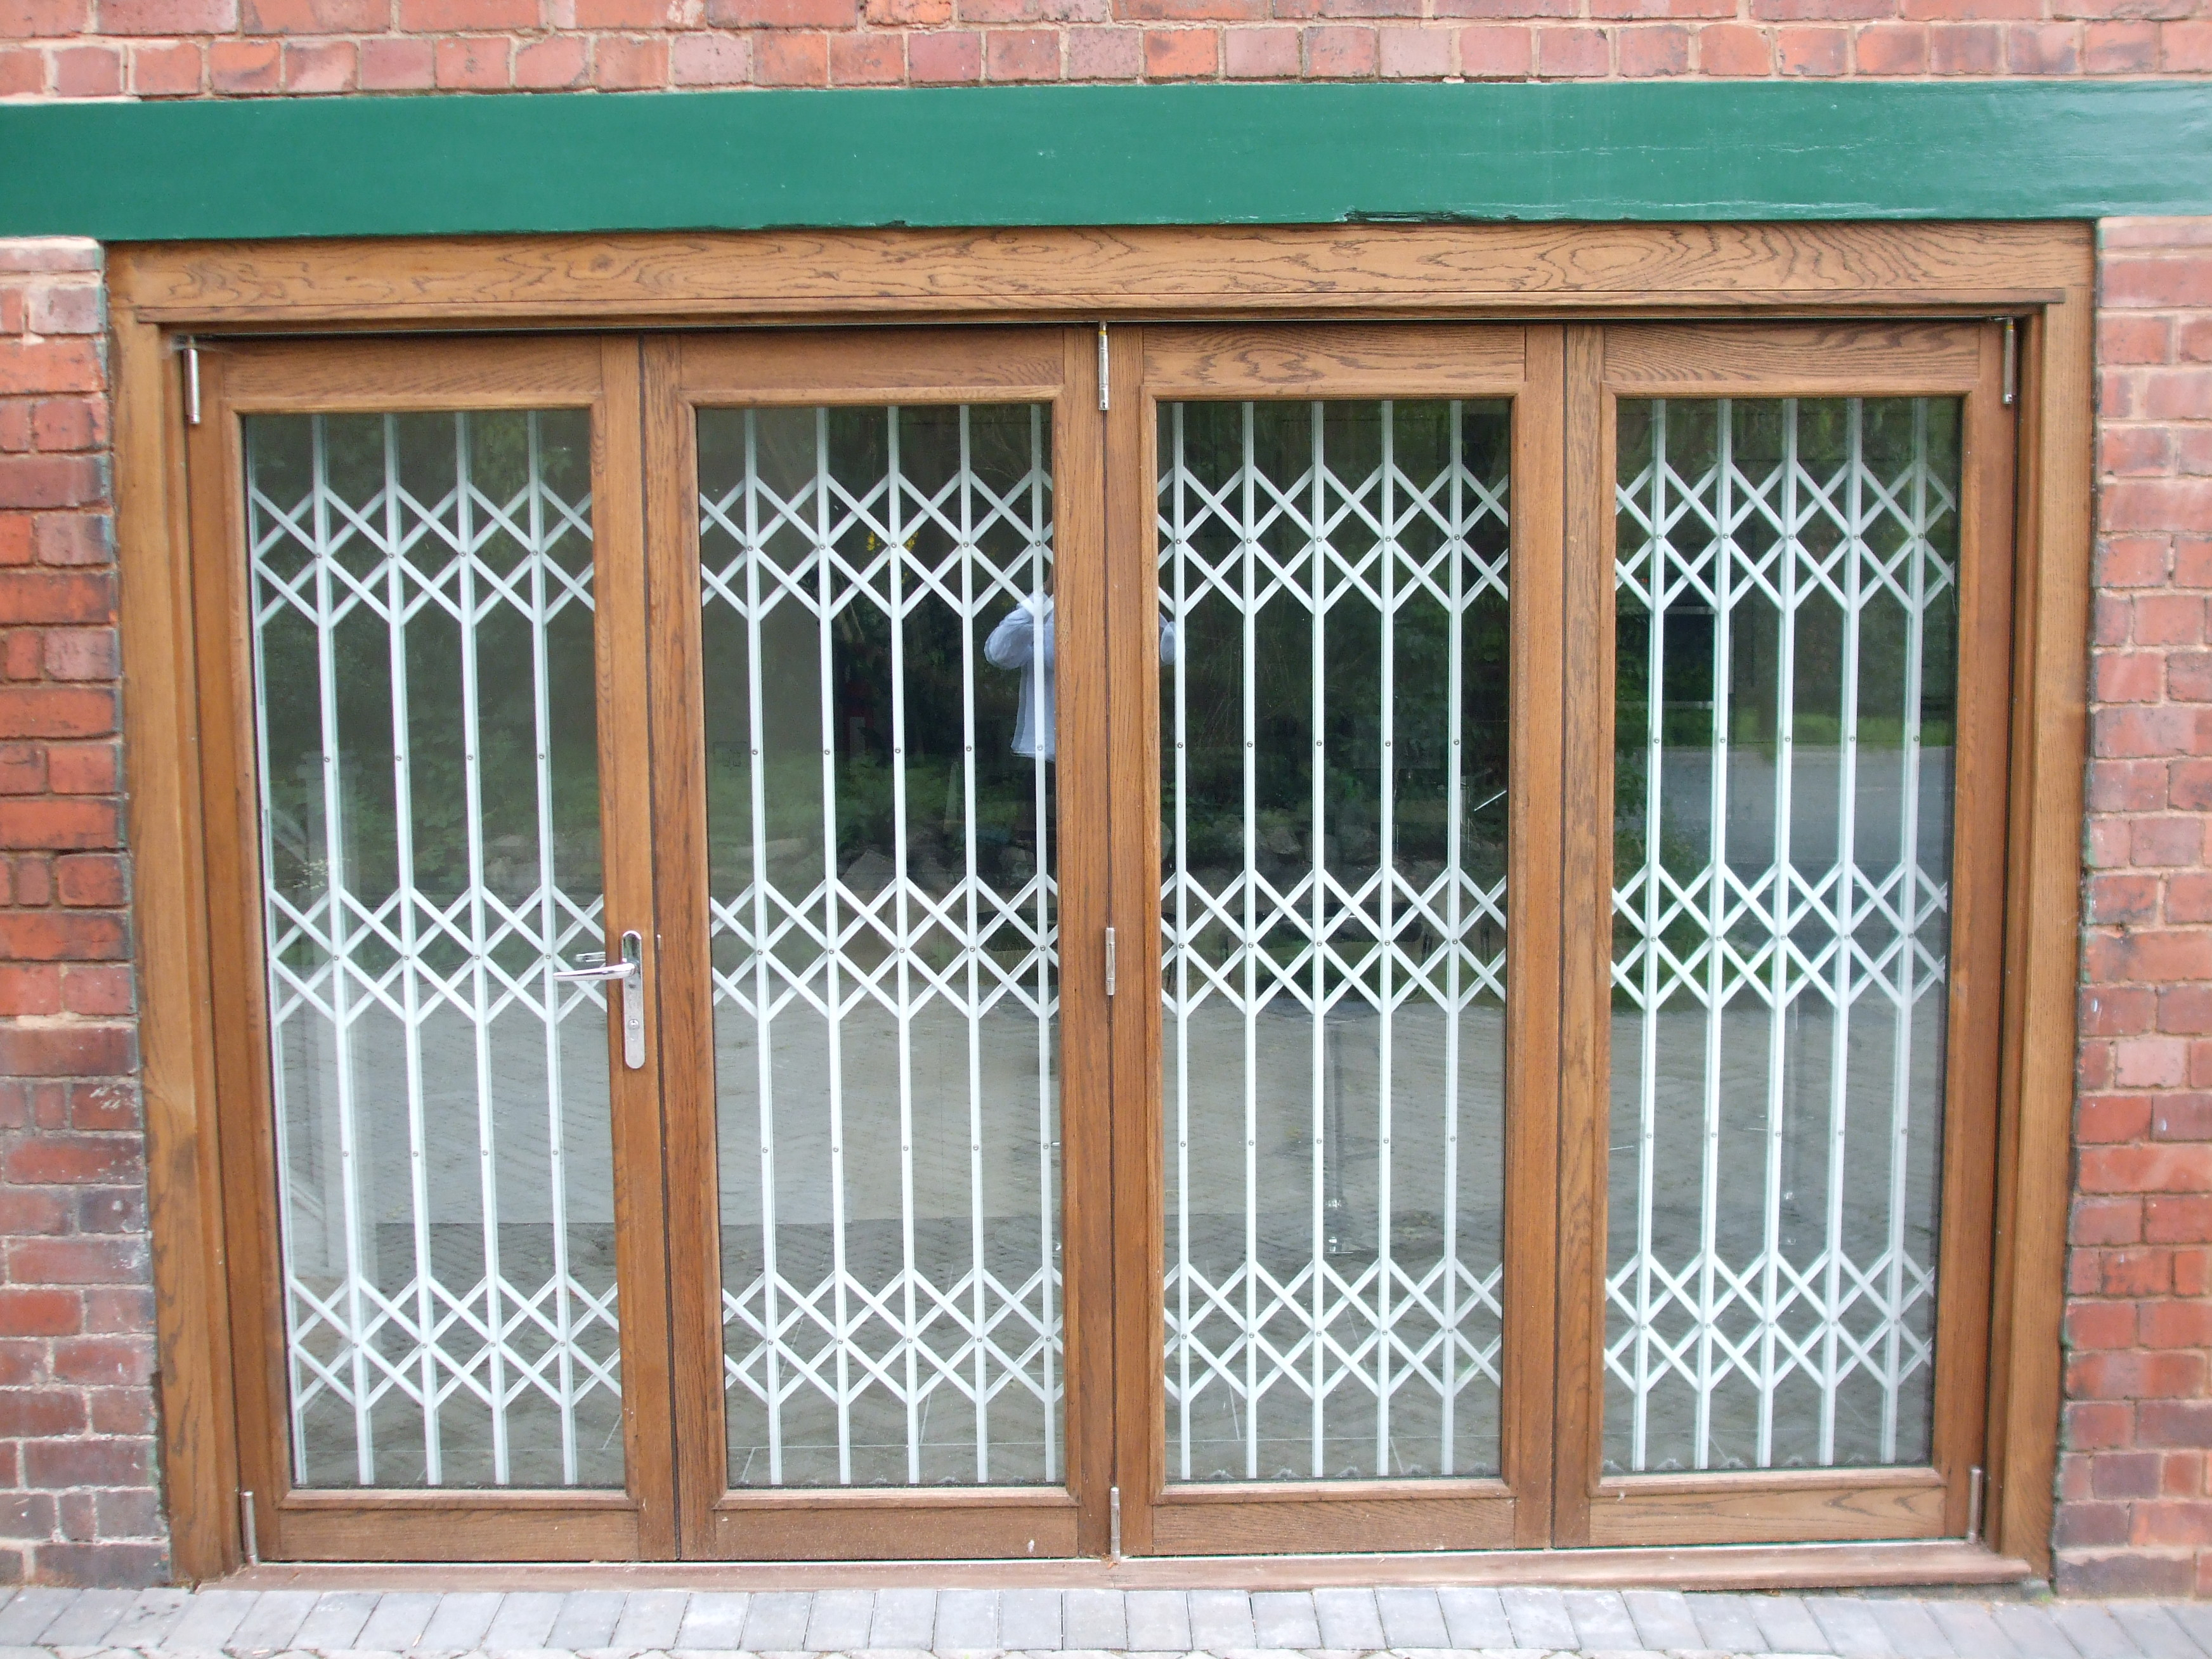 Security Grilles For Windows And Doors Theam Security